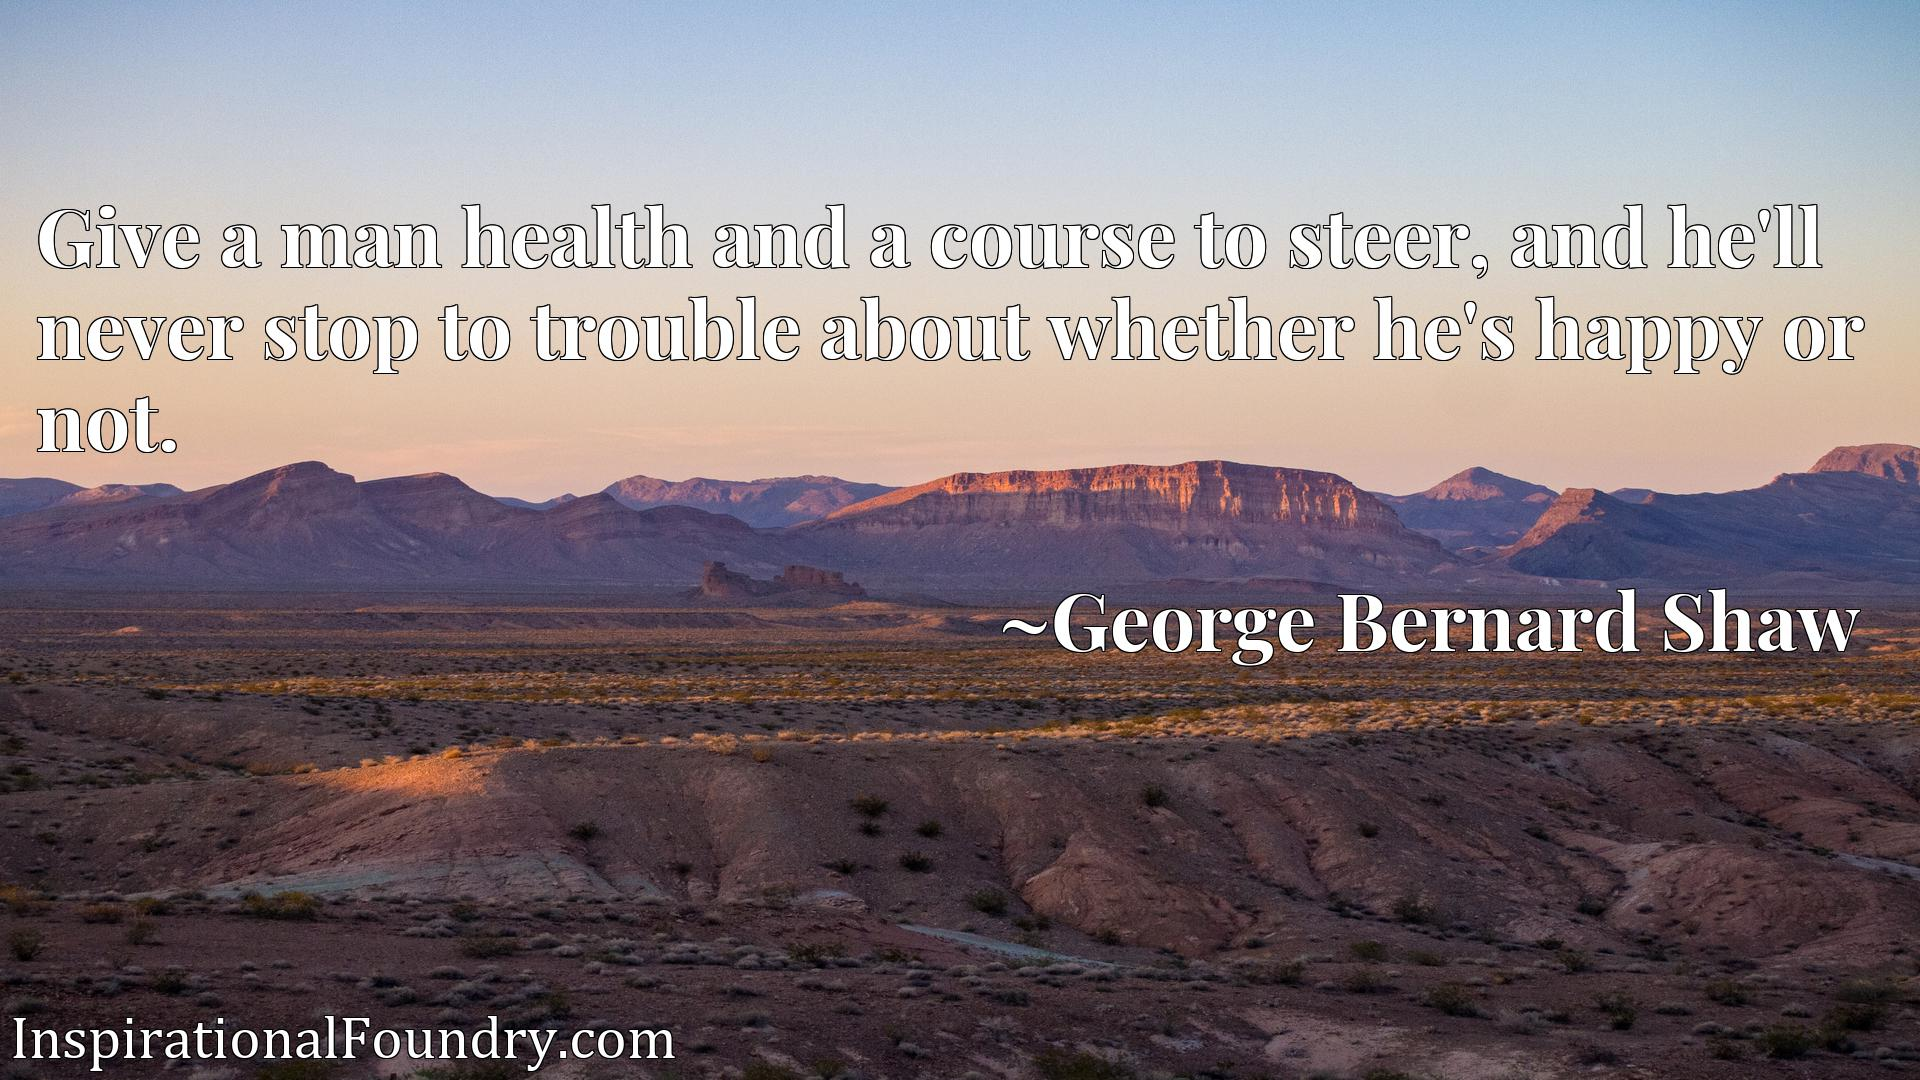 Quote Picture :Give a man health and a course to steer, and he'll never stop to trouble about whether he's happy or not.